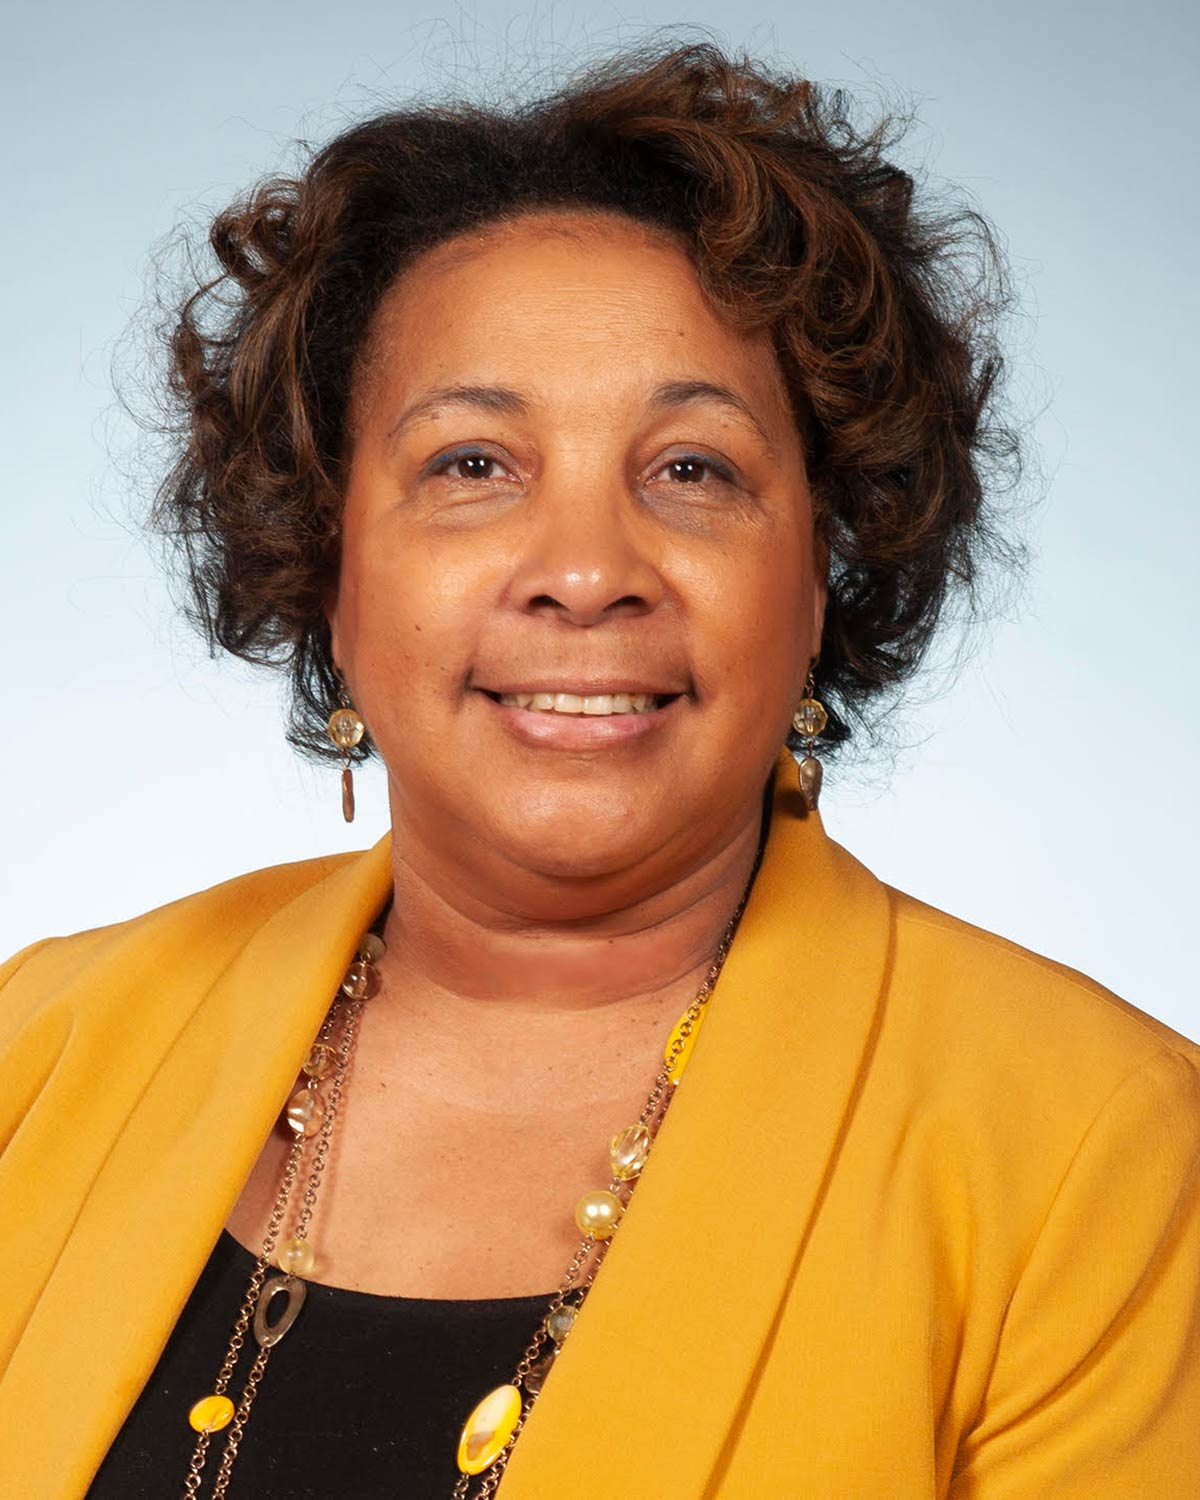 Professional headshot photograph of Marcine Pickron-Davis, PhD, PCOM's chief diversity officer